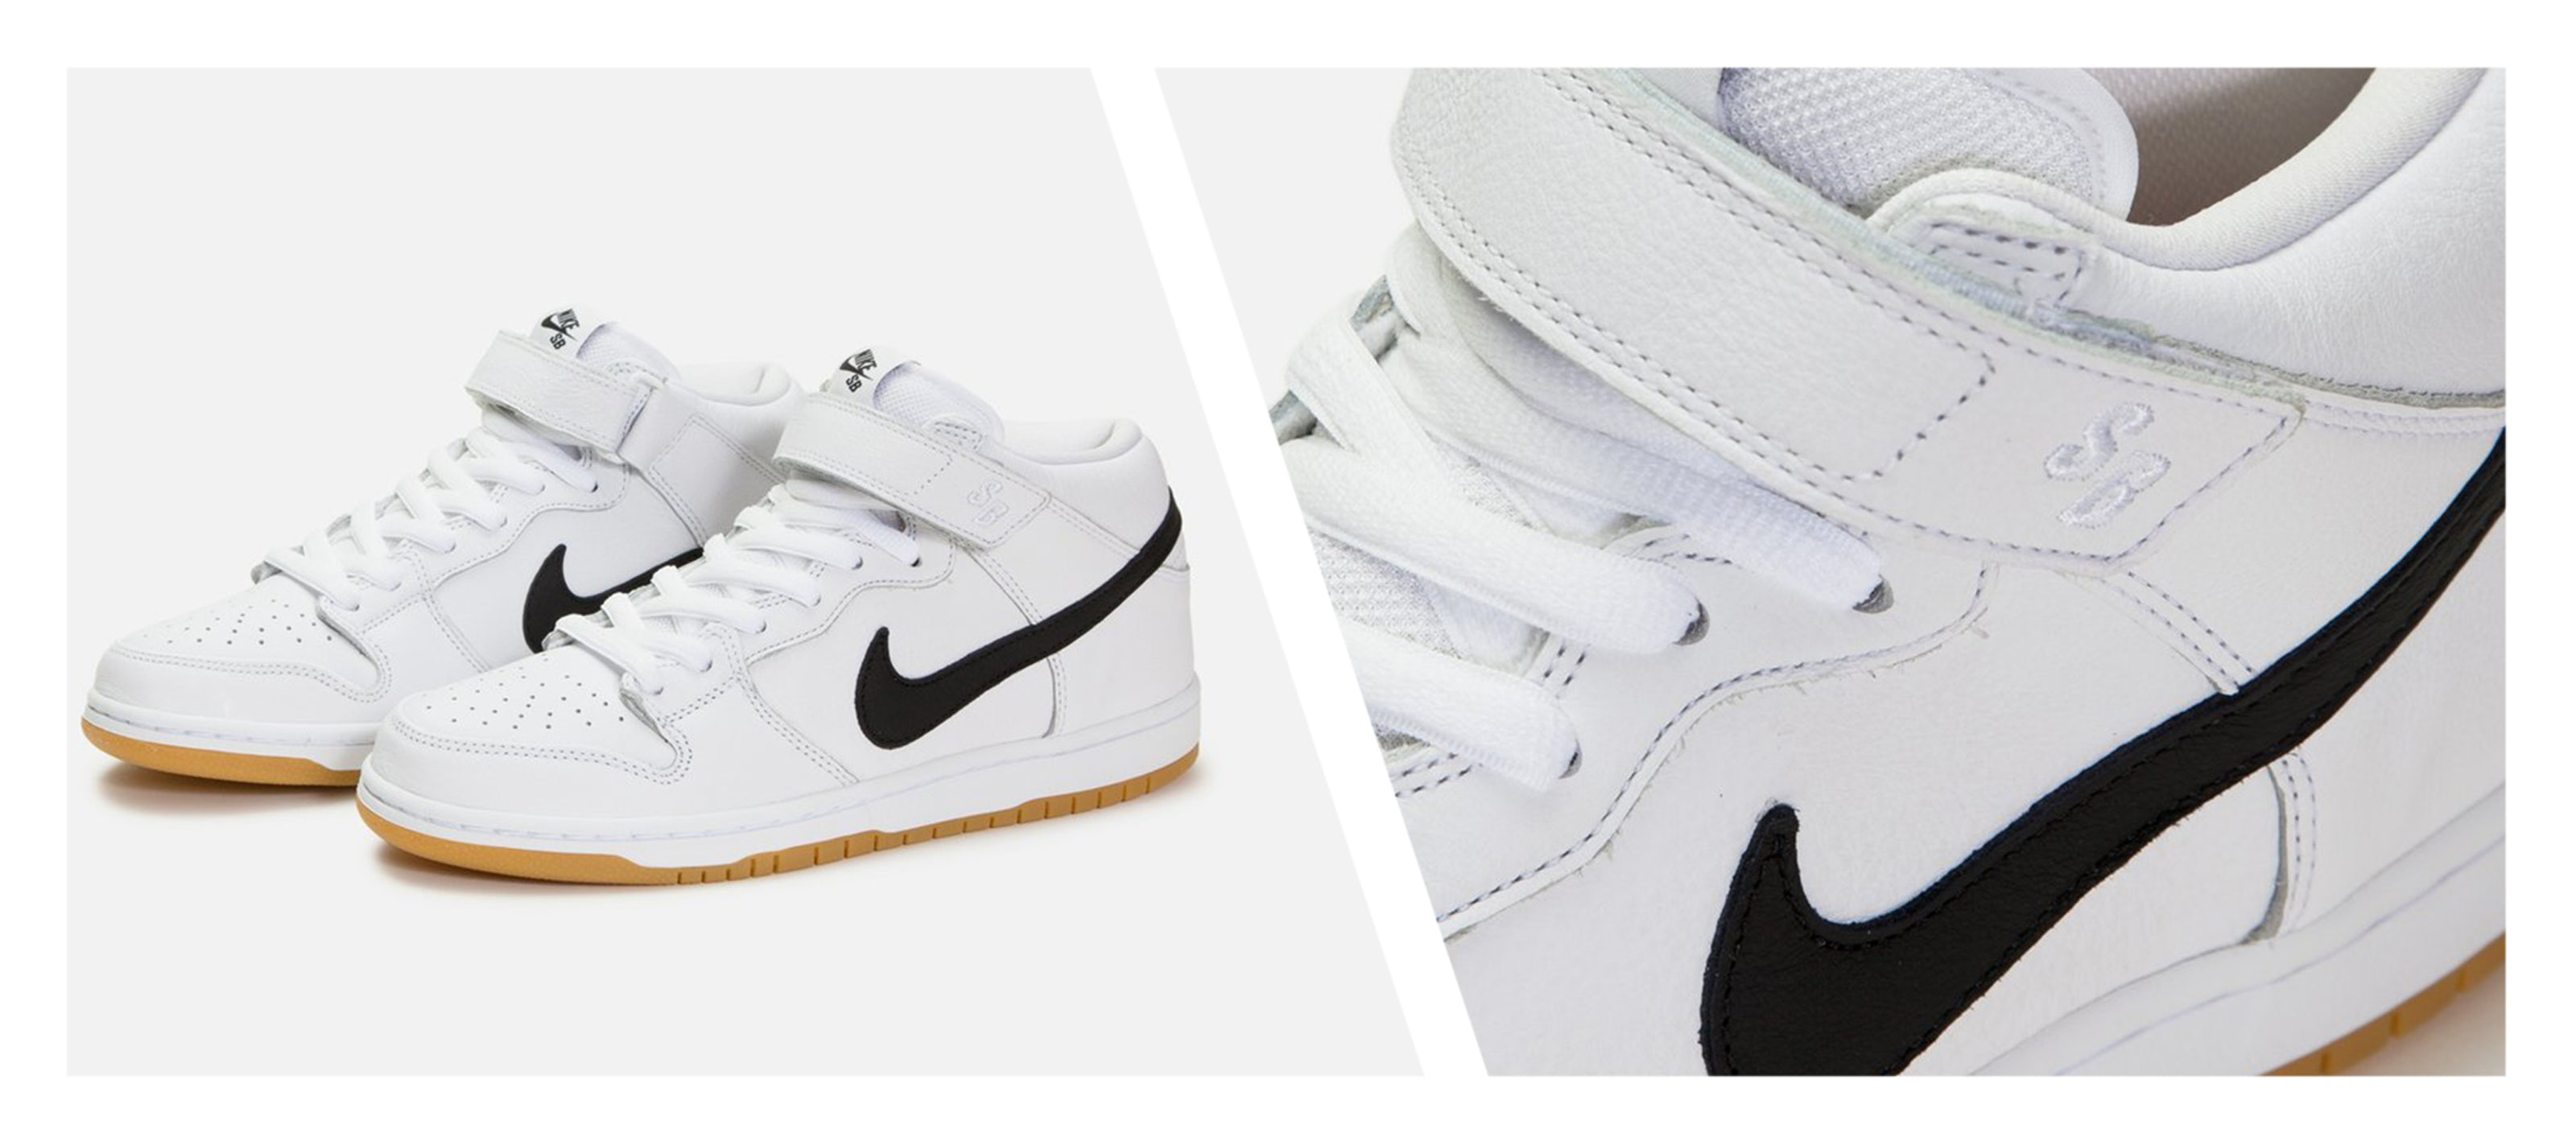 1d694cbdbbb7 5 Non-Collaboration Nike SB Dunks to Cop for Summer 2019 // ONE37pm